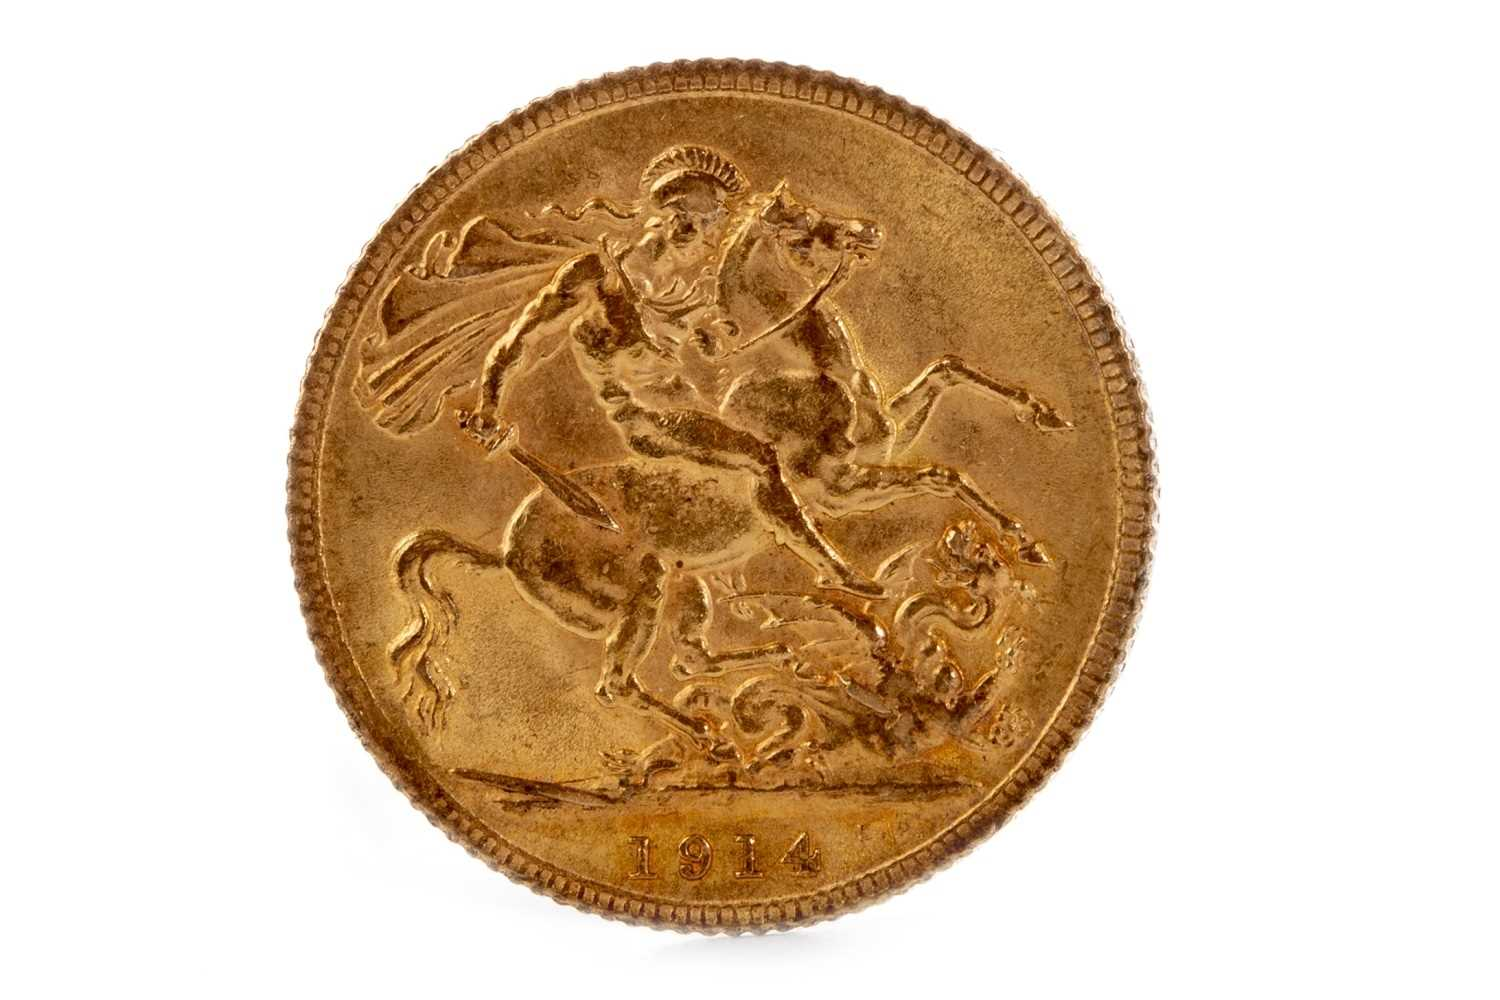 Lot 553-A GOLD SOVEREIGN, 1914